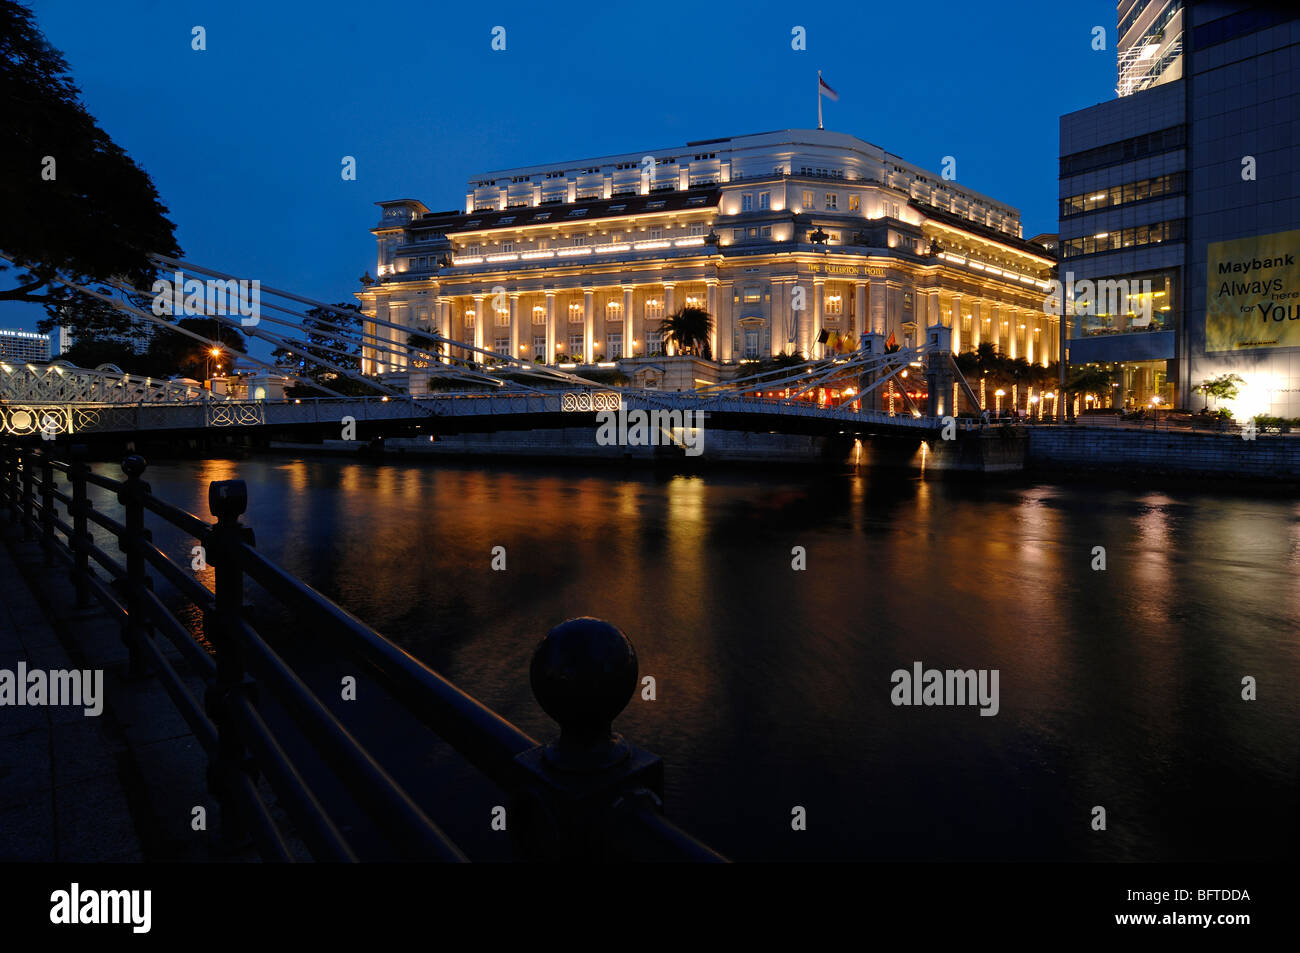 The Luxury Up-Market Fullerton Hotel (former the Central Post Office) Lit at Night & the Singapore River, Singapore - Stock Image